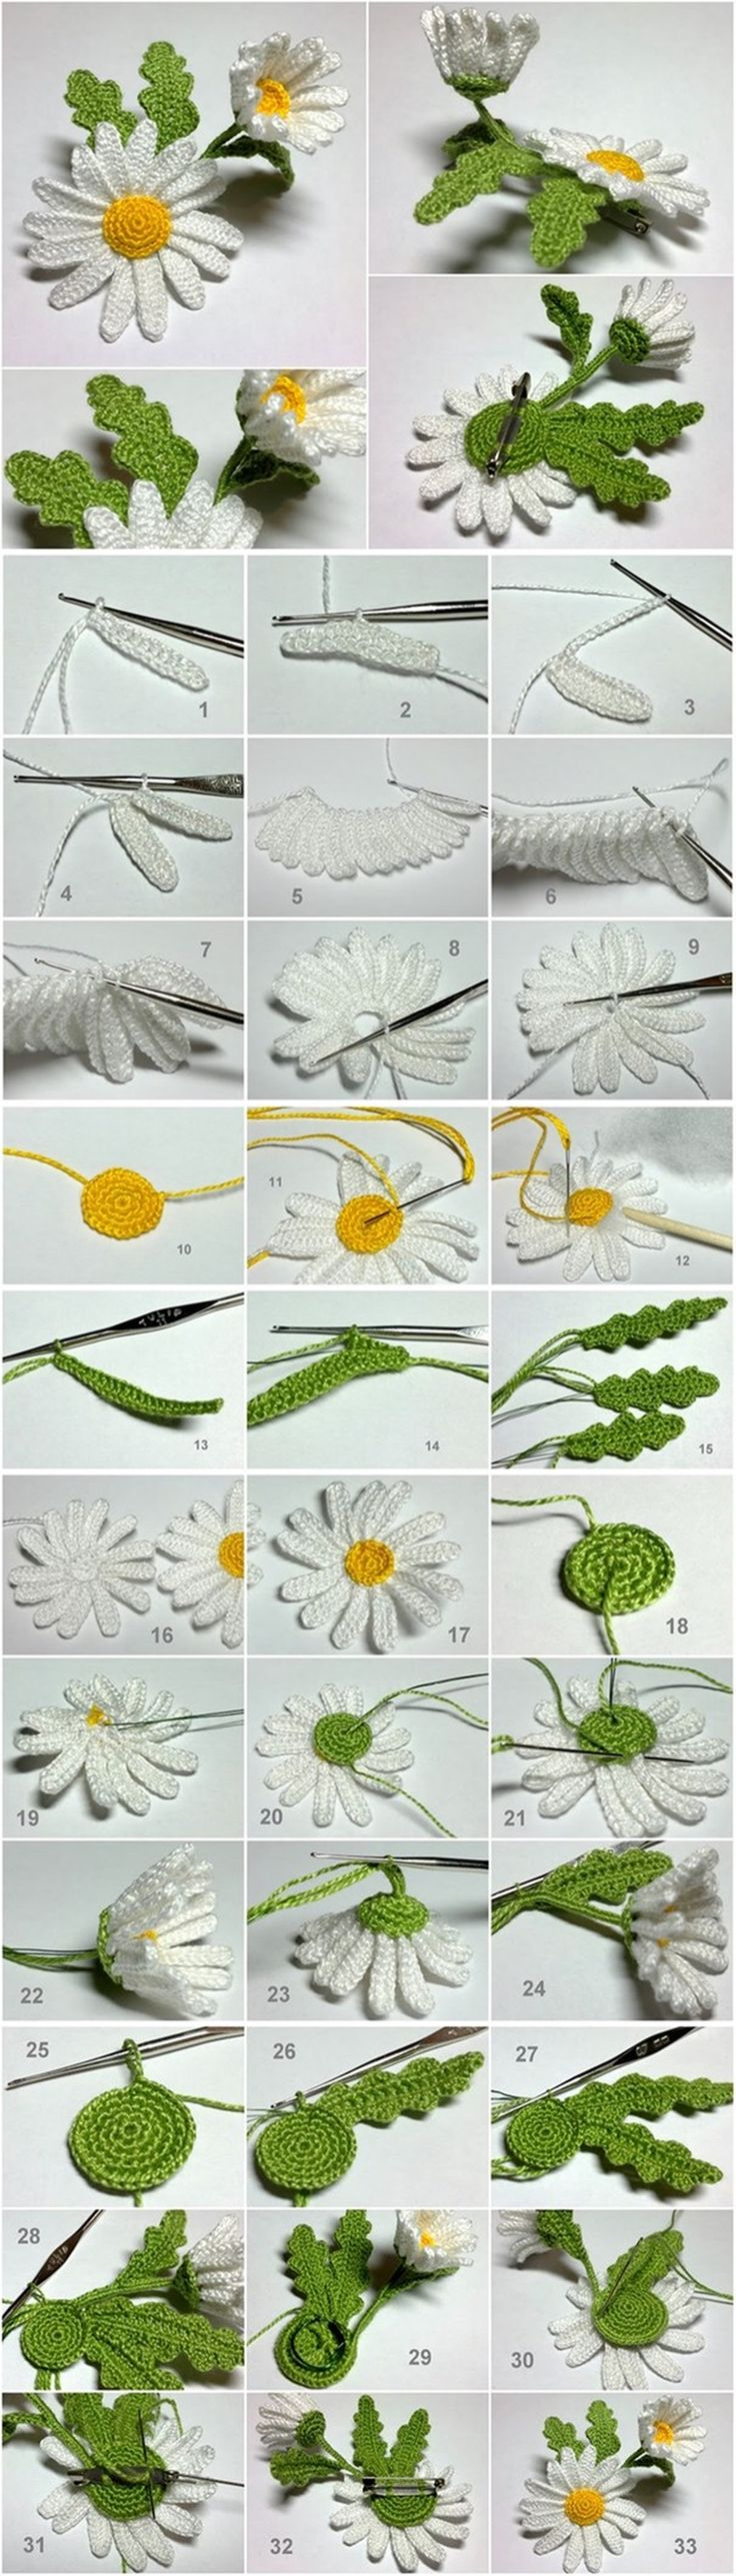 Crochet 3D Daisy Flower #diy #crochetflower #craft